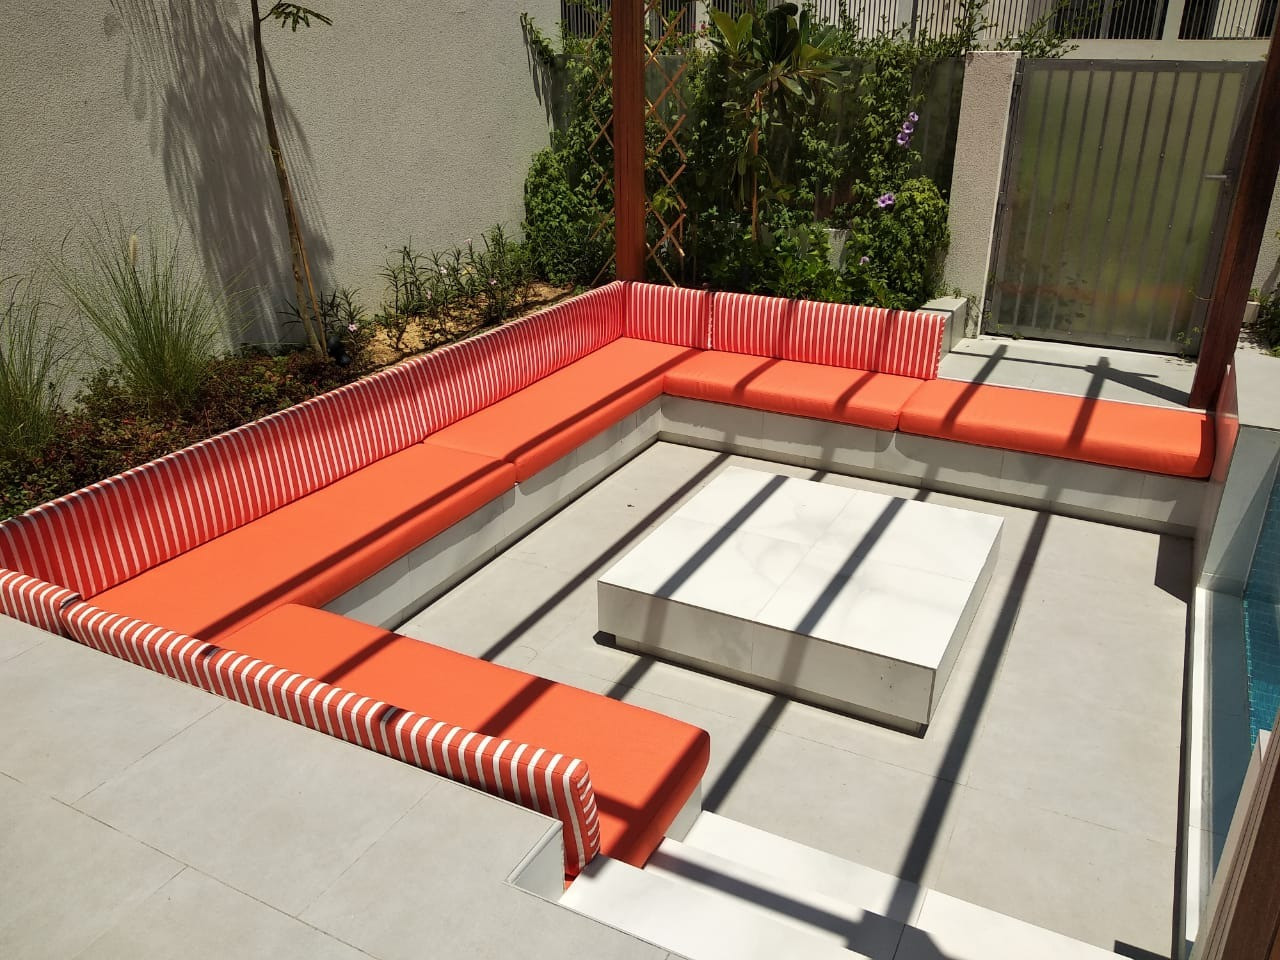 Pool side cushions using Sunbrella and Sun-proof outdoor fabric